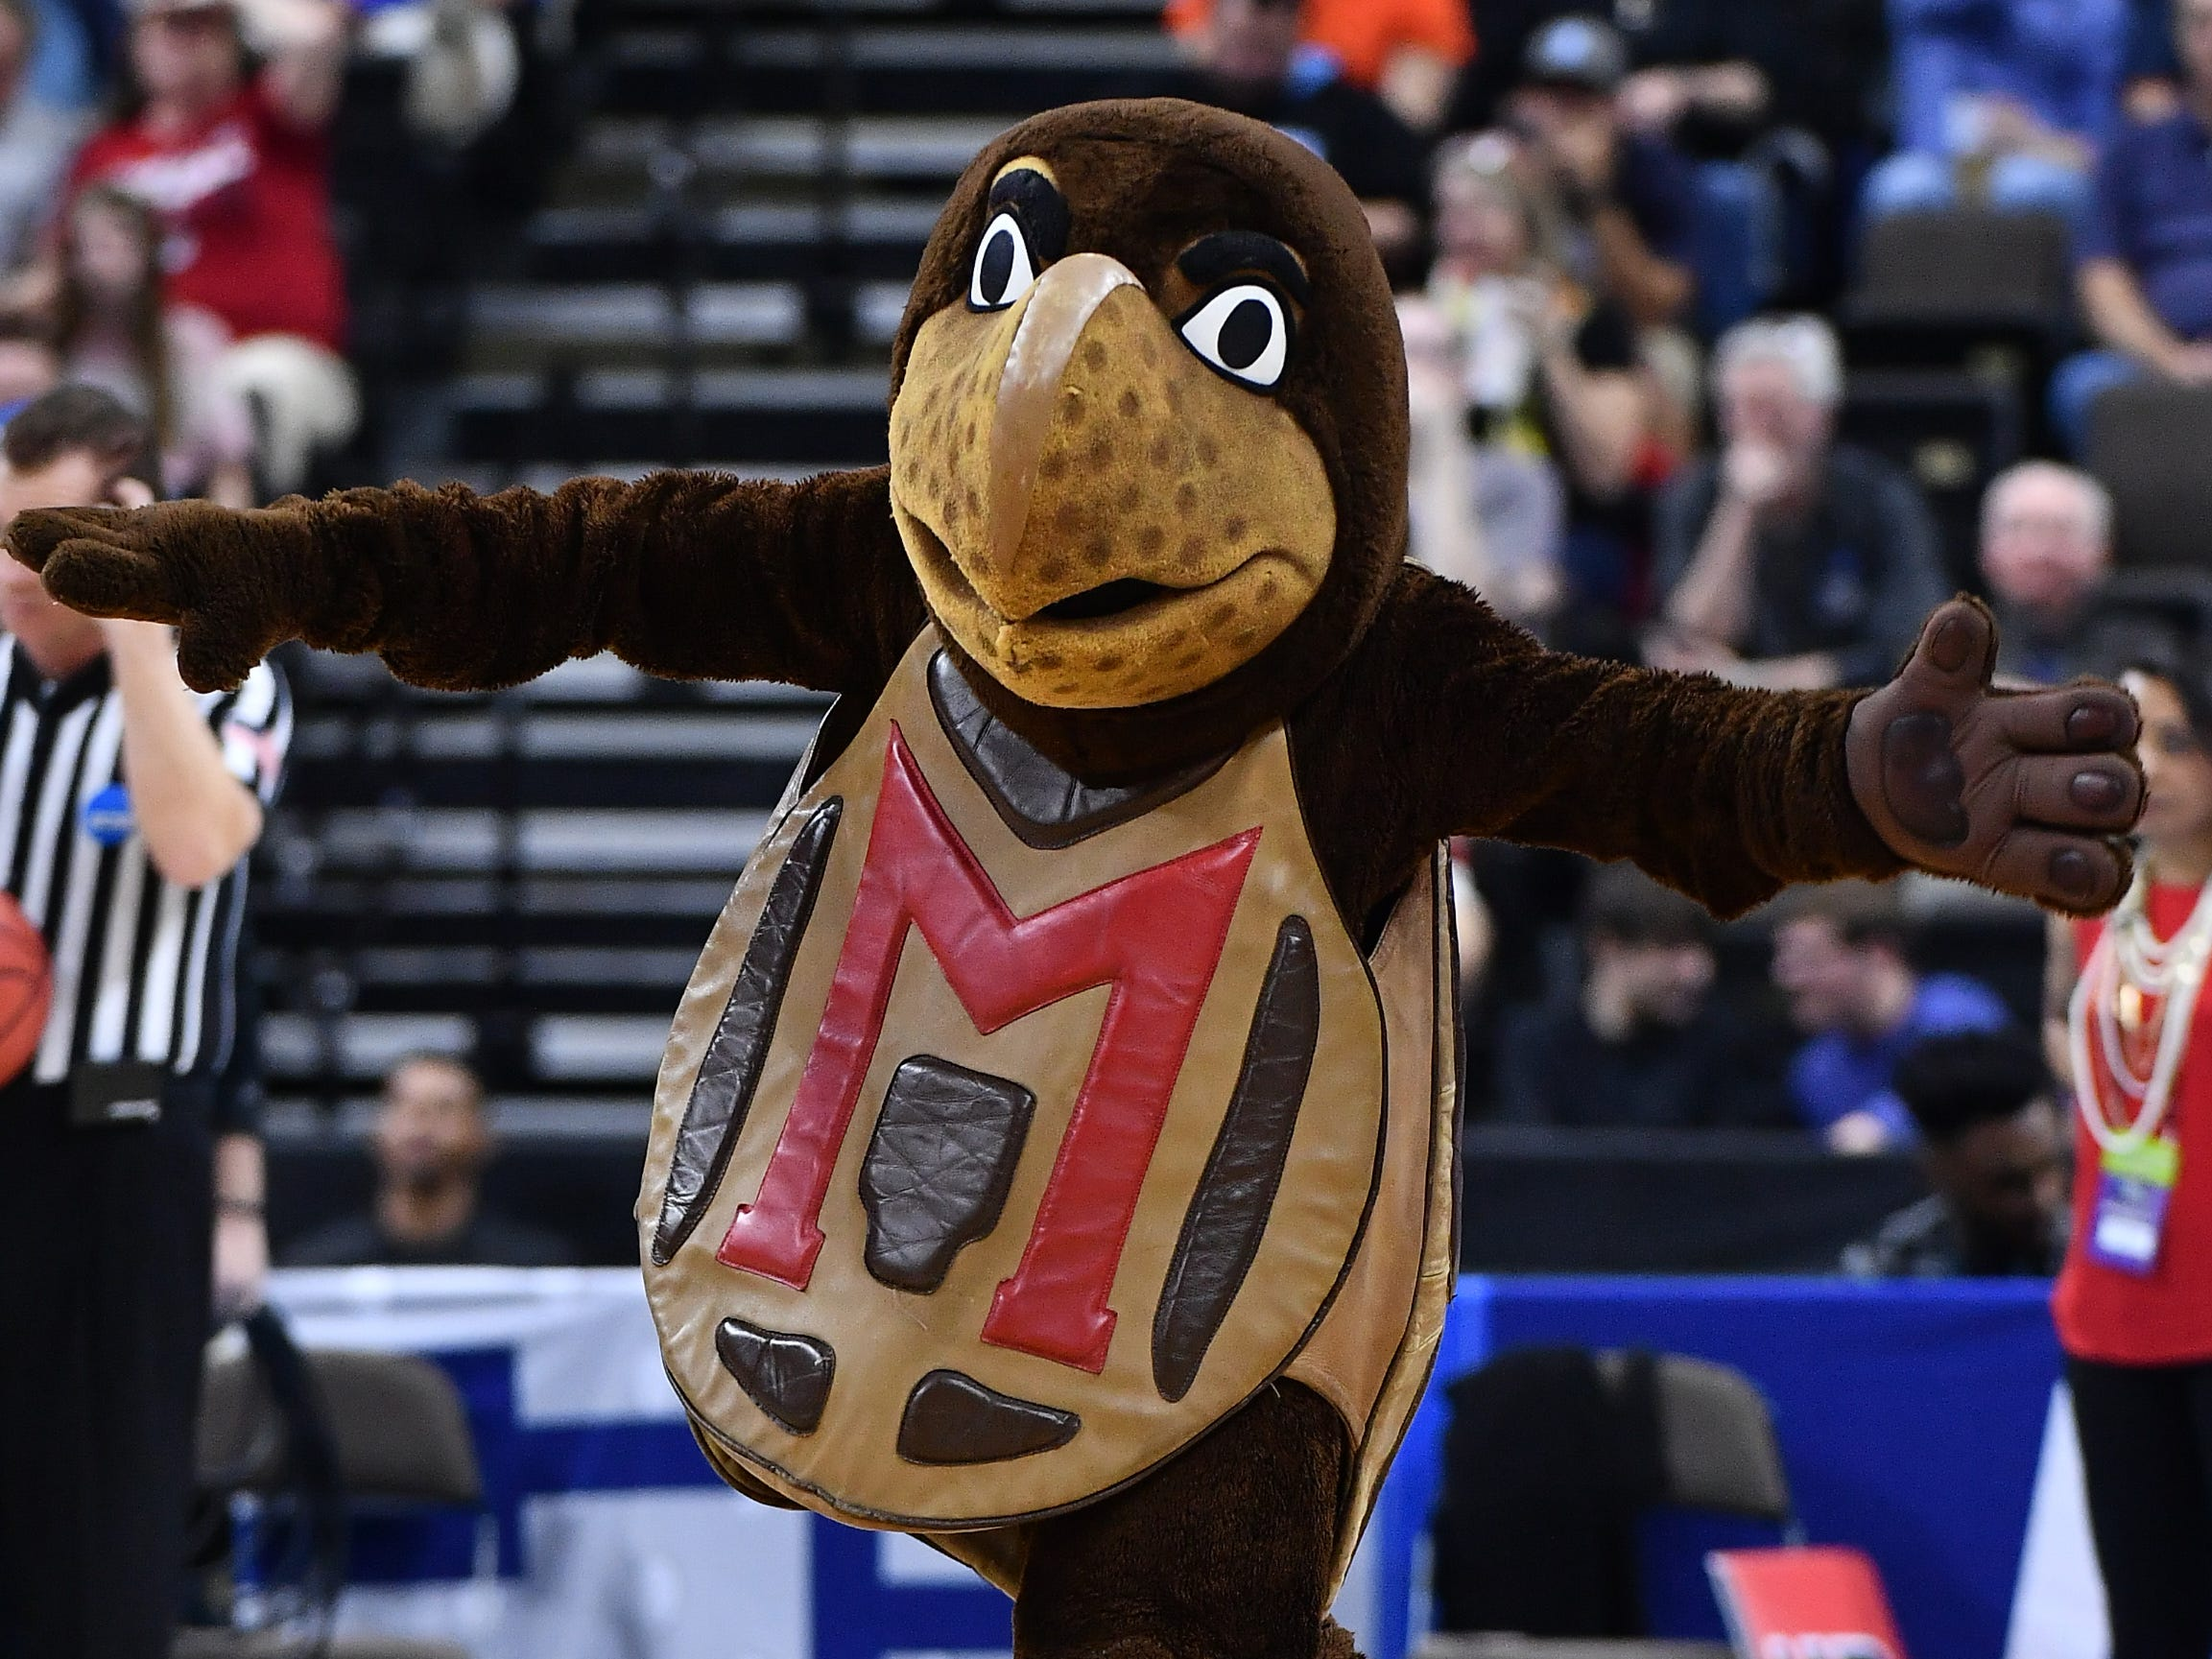 First round: The Maryland Terrapins mascot performs during the game against the Belmont Bruins.